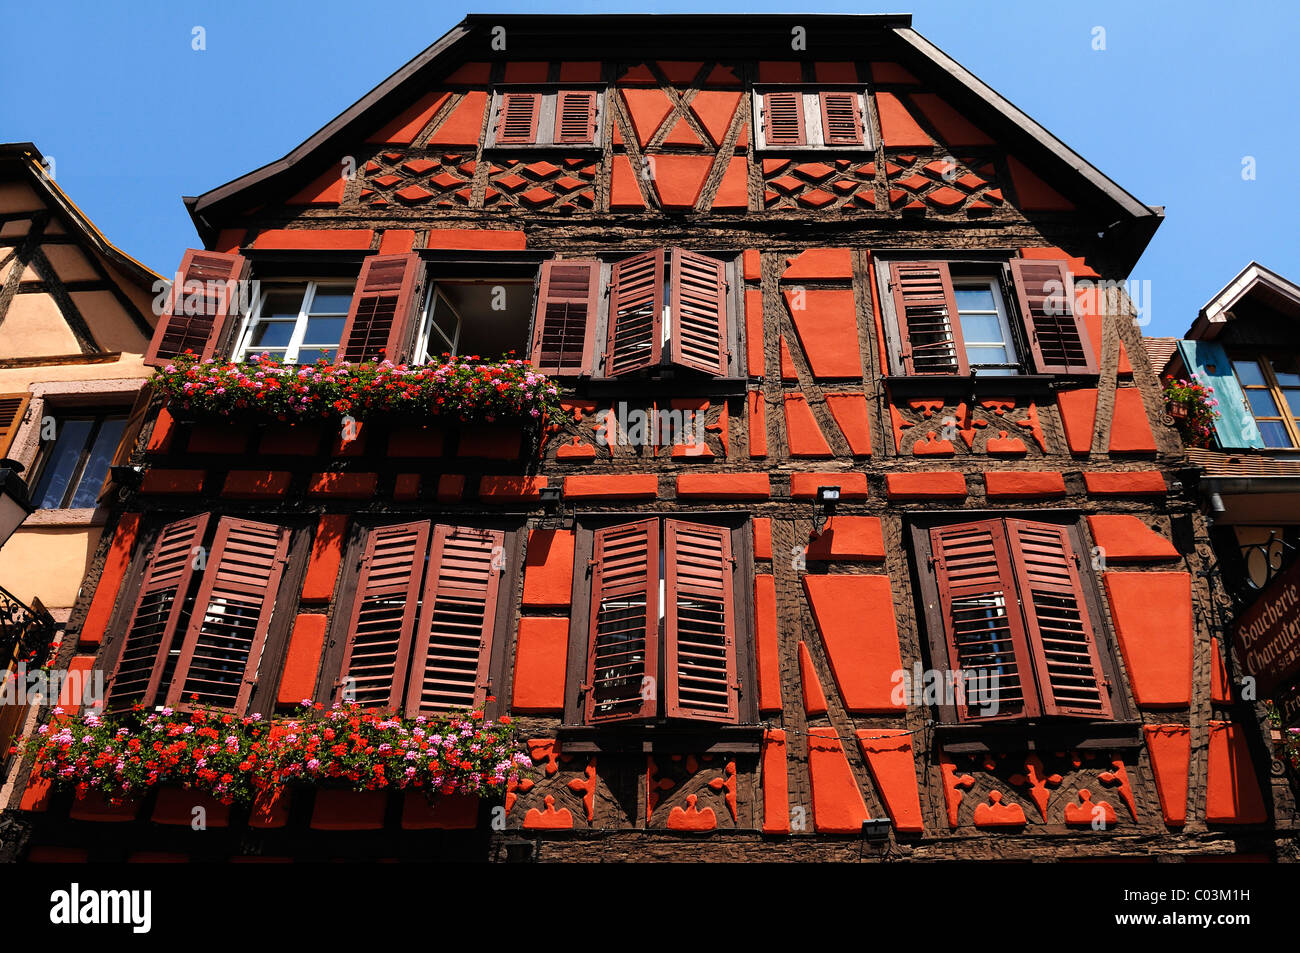 Old Alsatian half-timbered facade, 78 Grand'Rue, Ribeauvillé, Alsace, France, Europe - Stock Image